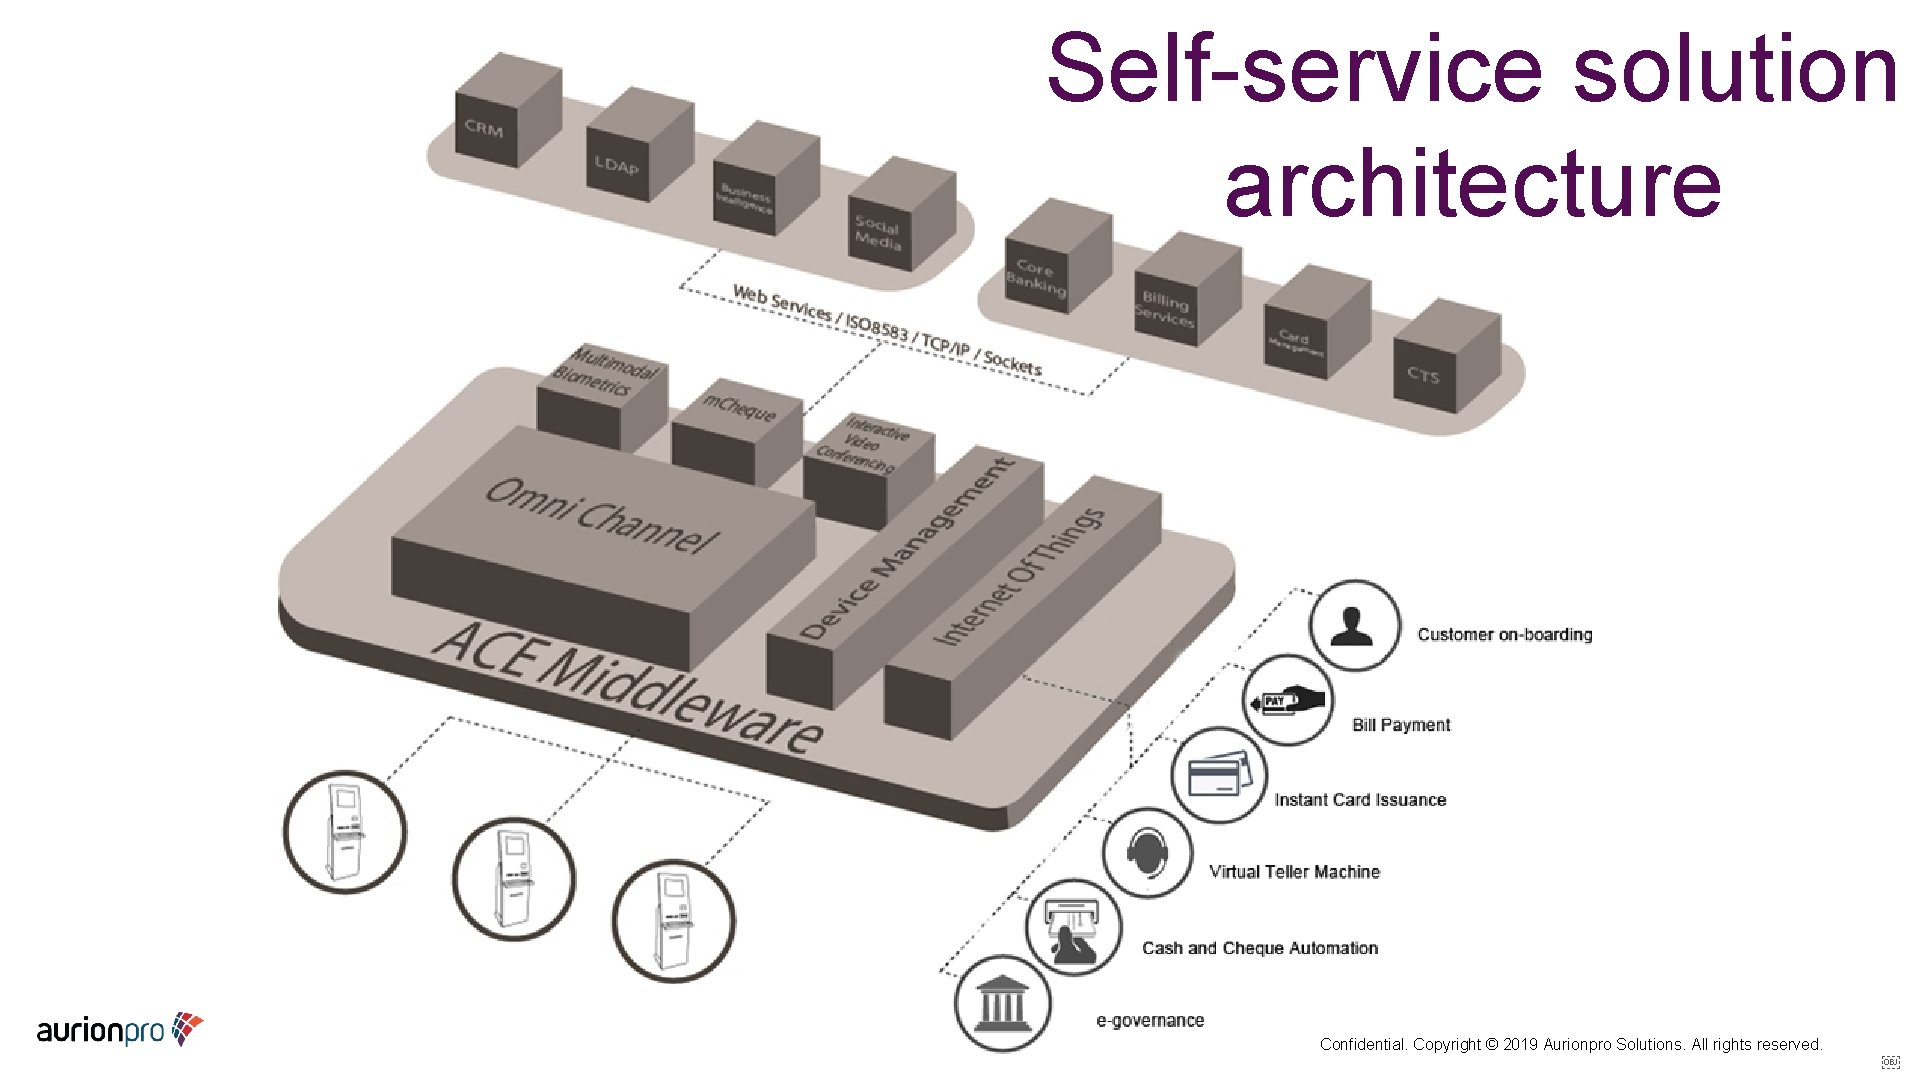 Self-service solution architecture Confidential. Copyright © 2019 Aurionpro Solutions. All rights reserved.